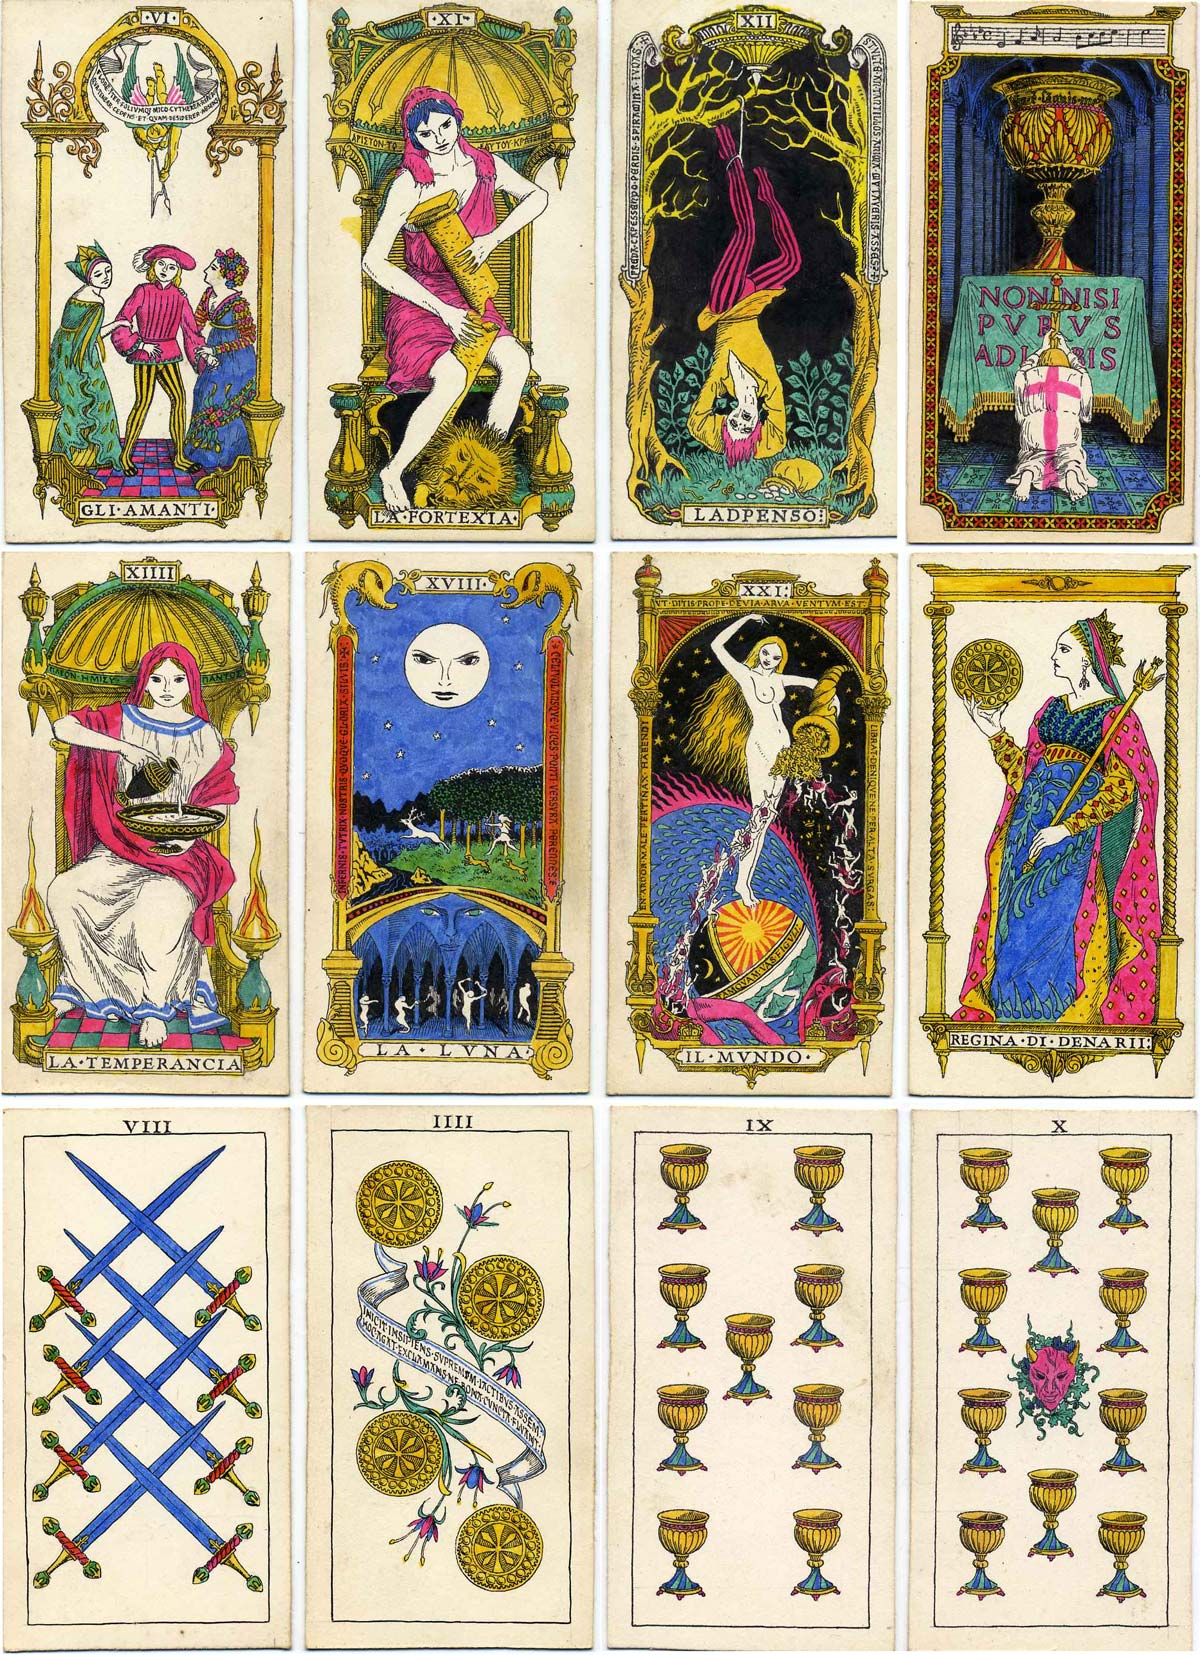 Original tarot designs in Italian Renaissance style by Oliver Mundy